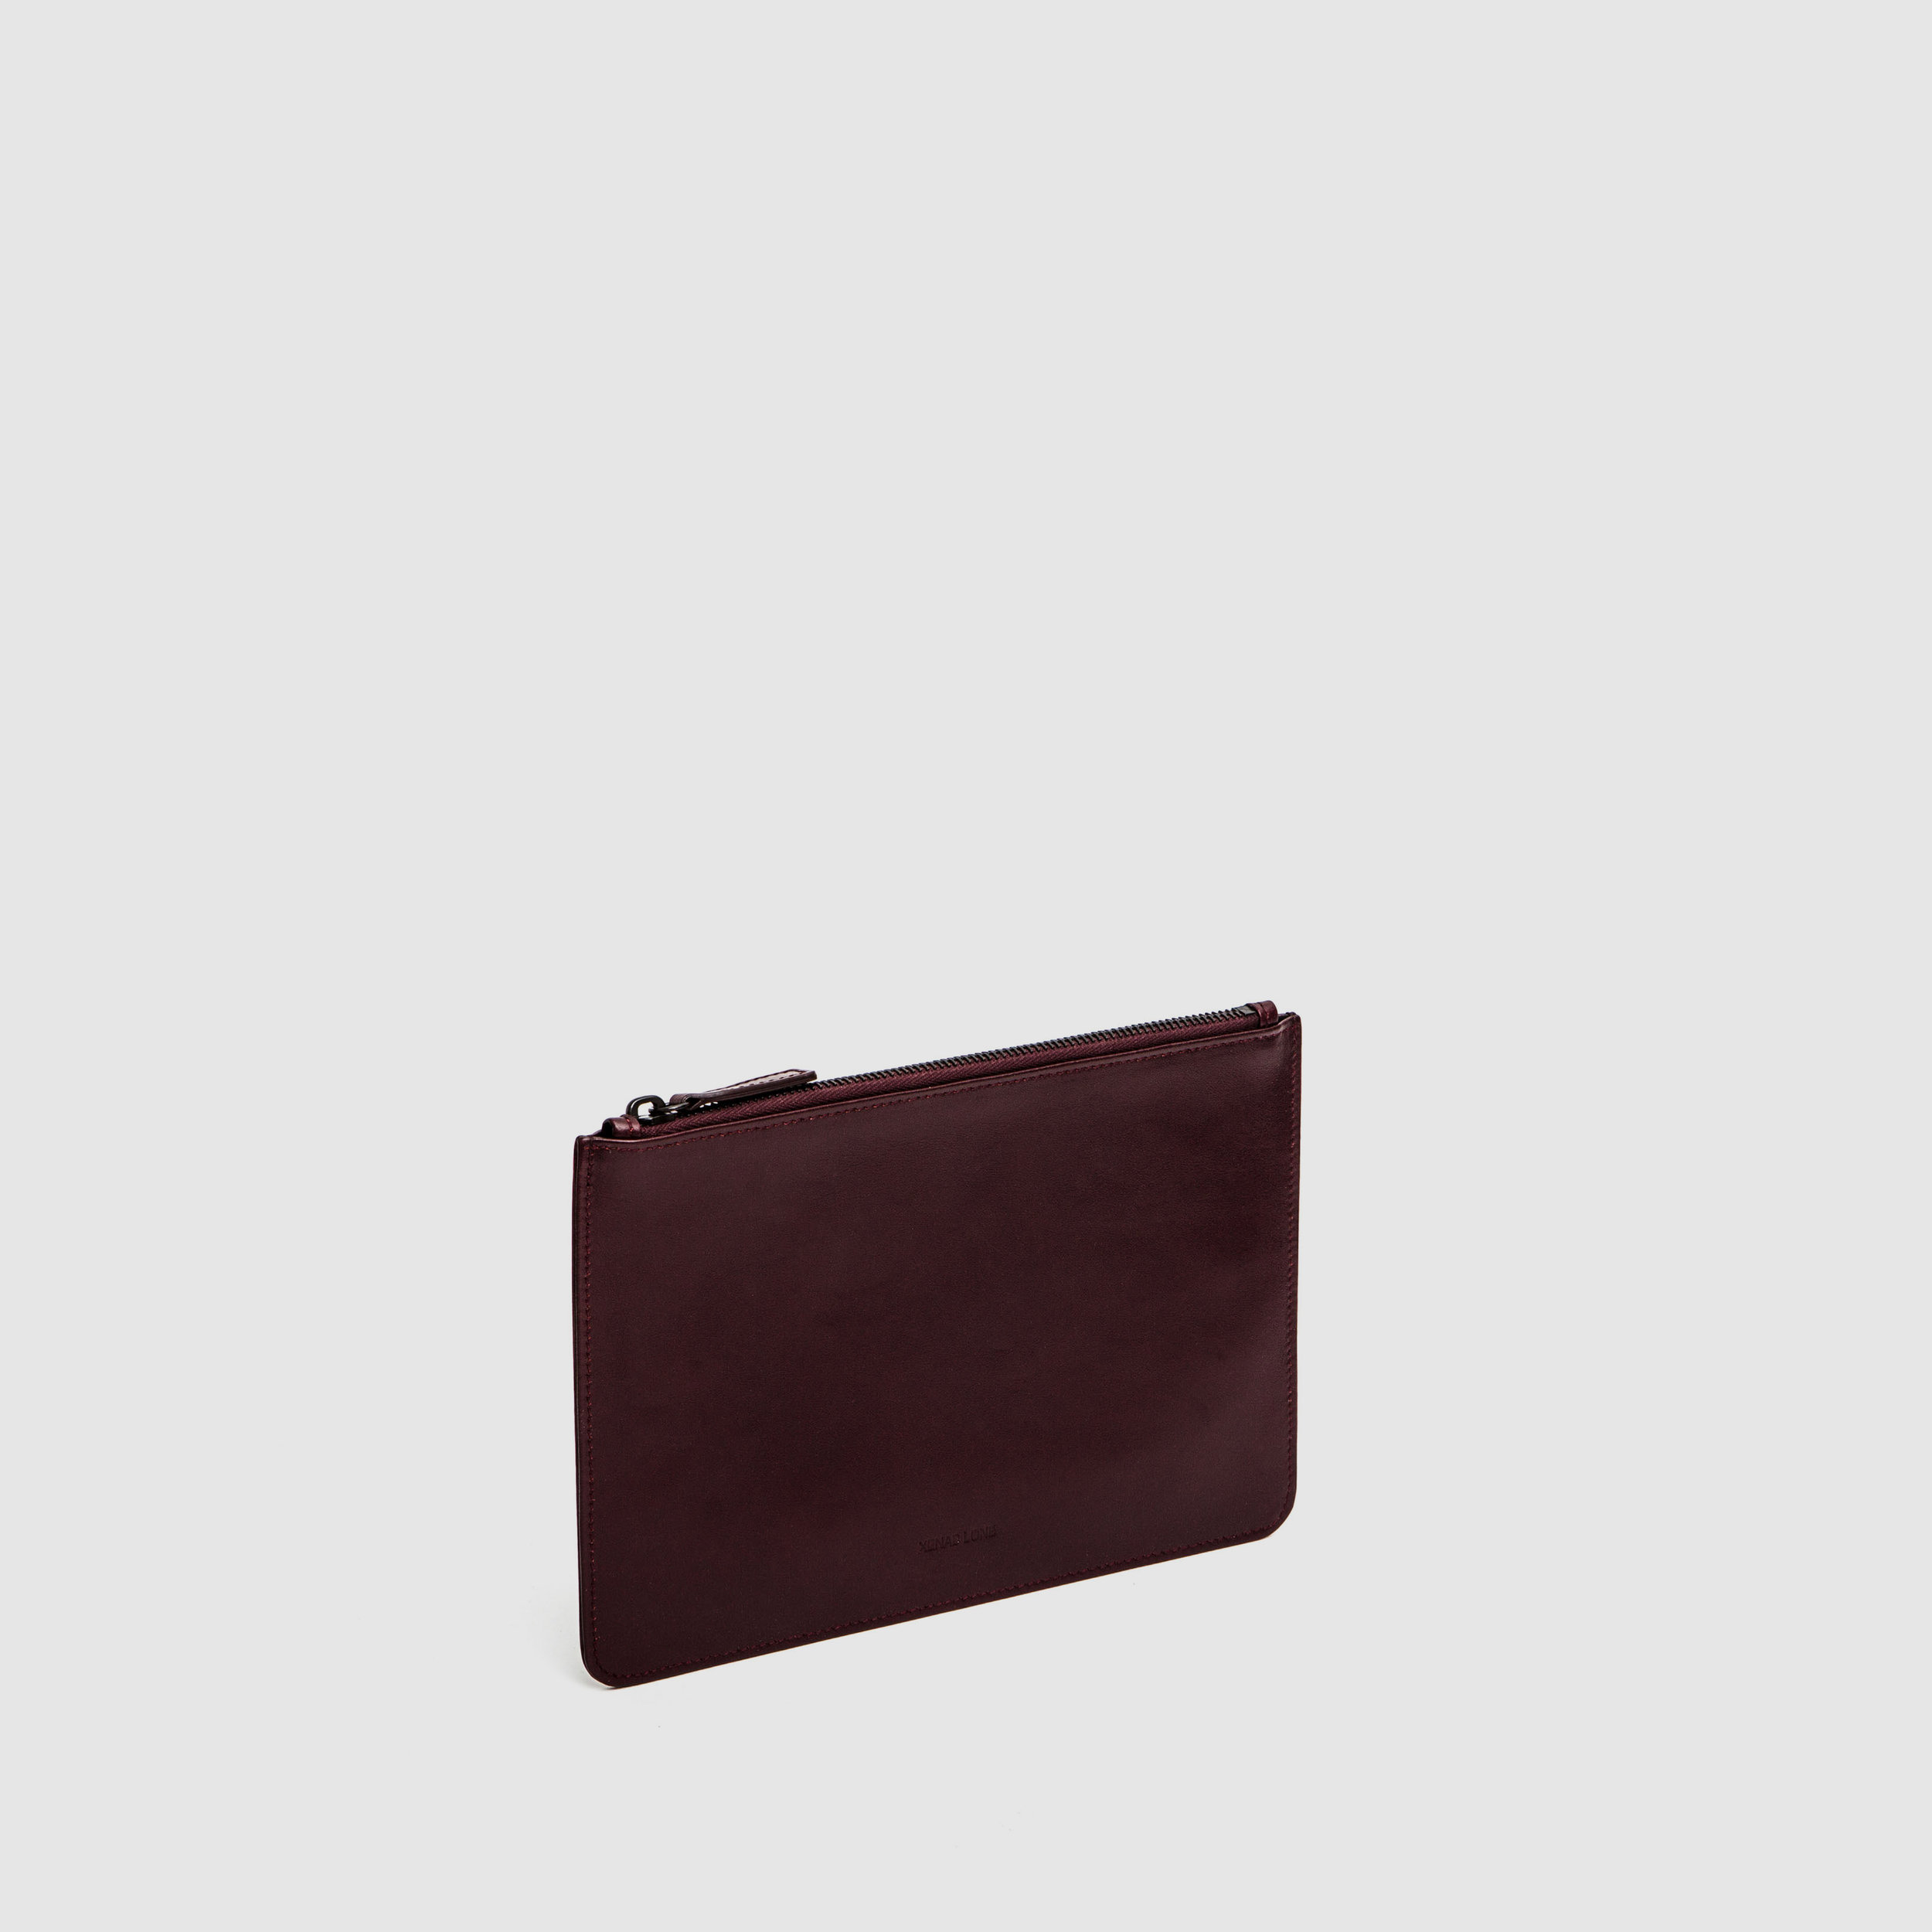 Wallets&Pouches_0001s_0000s_0005_Layer 41.jpg